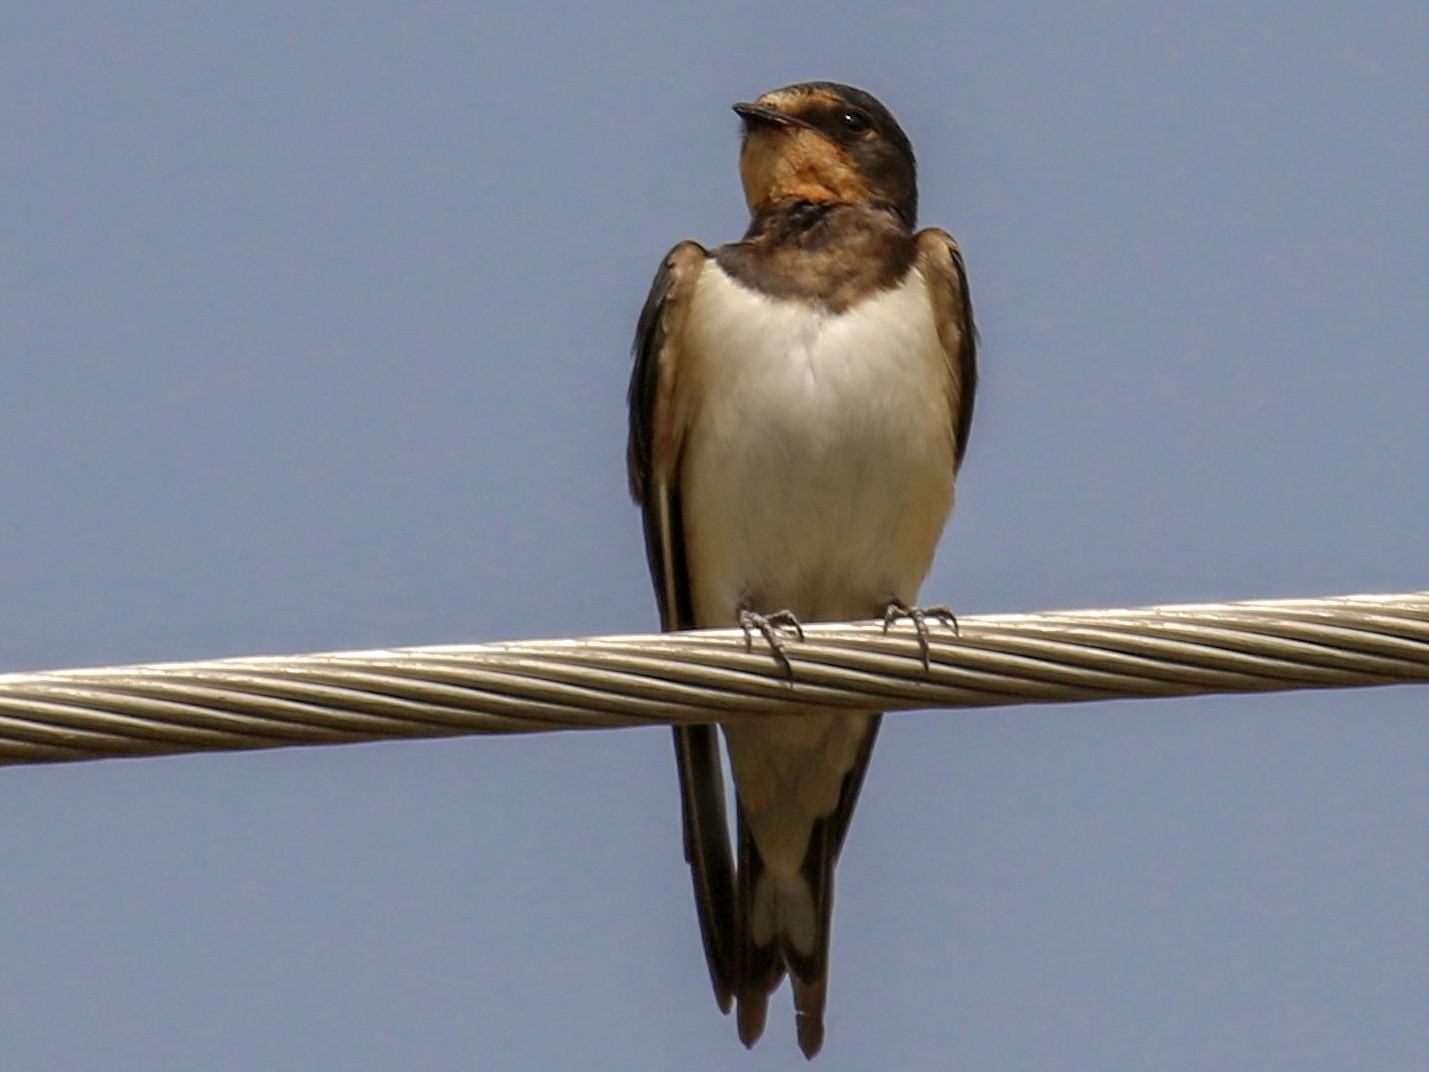 Red-chested Swallow - Fikret Ataşalan